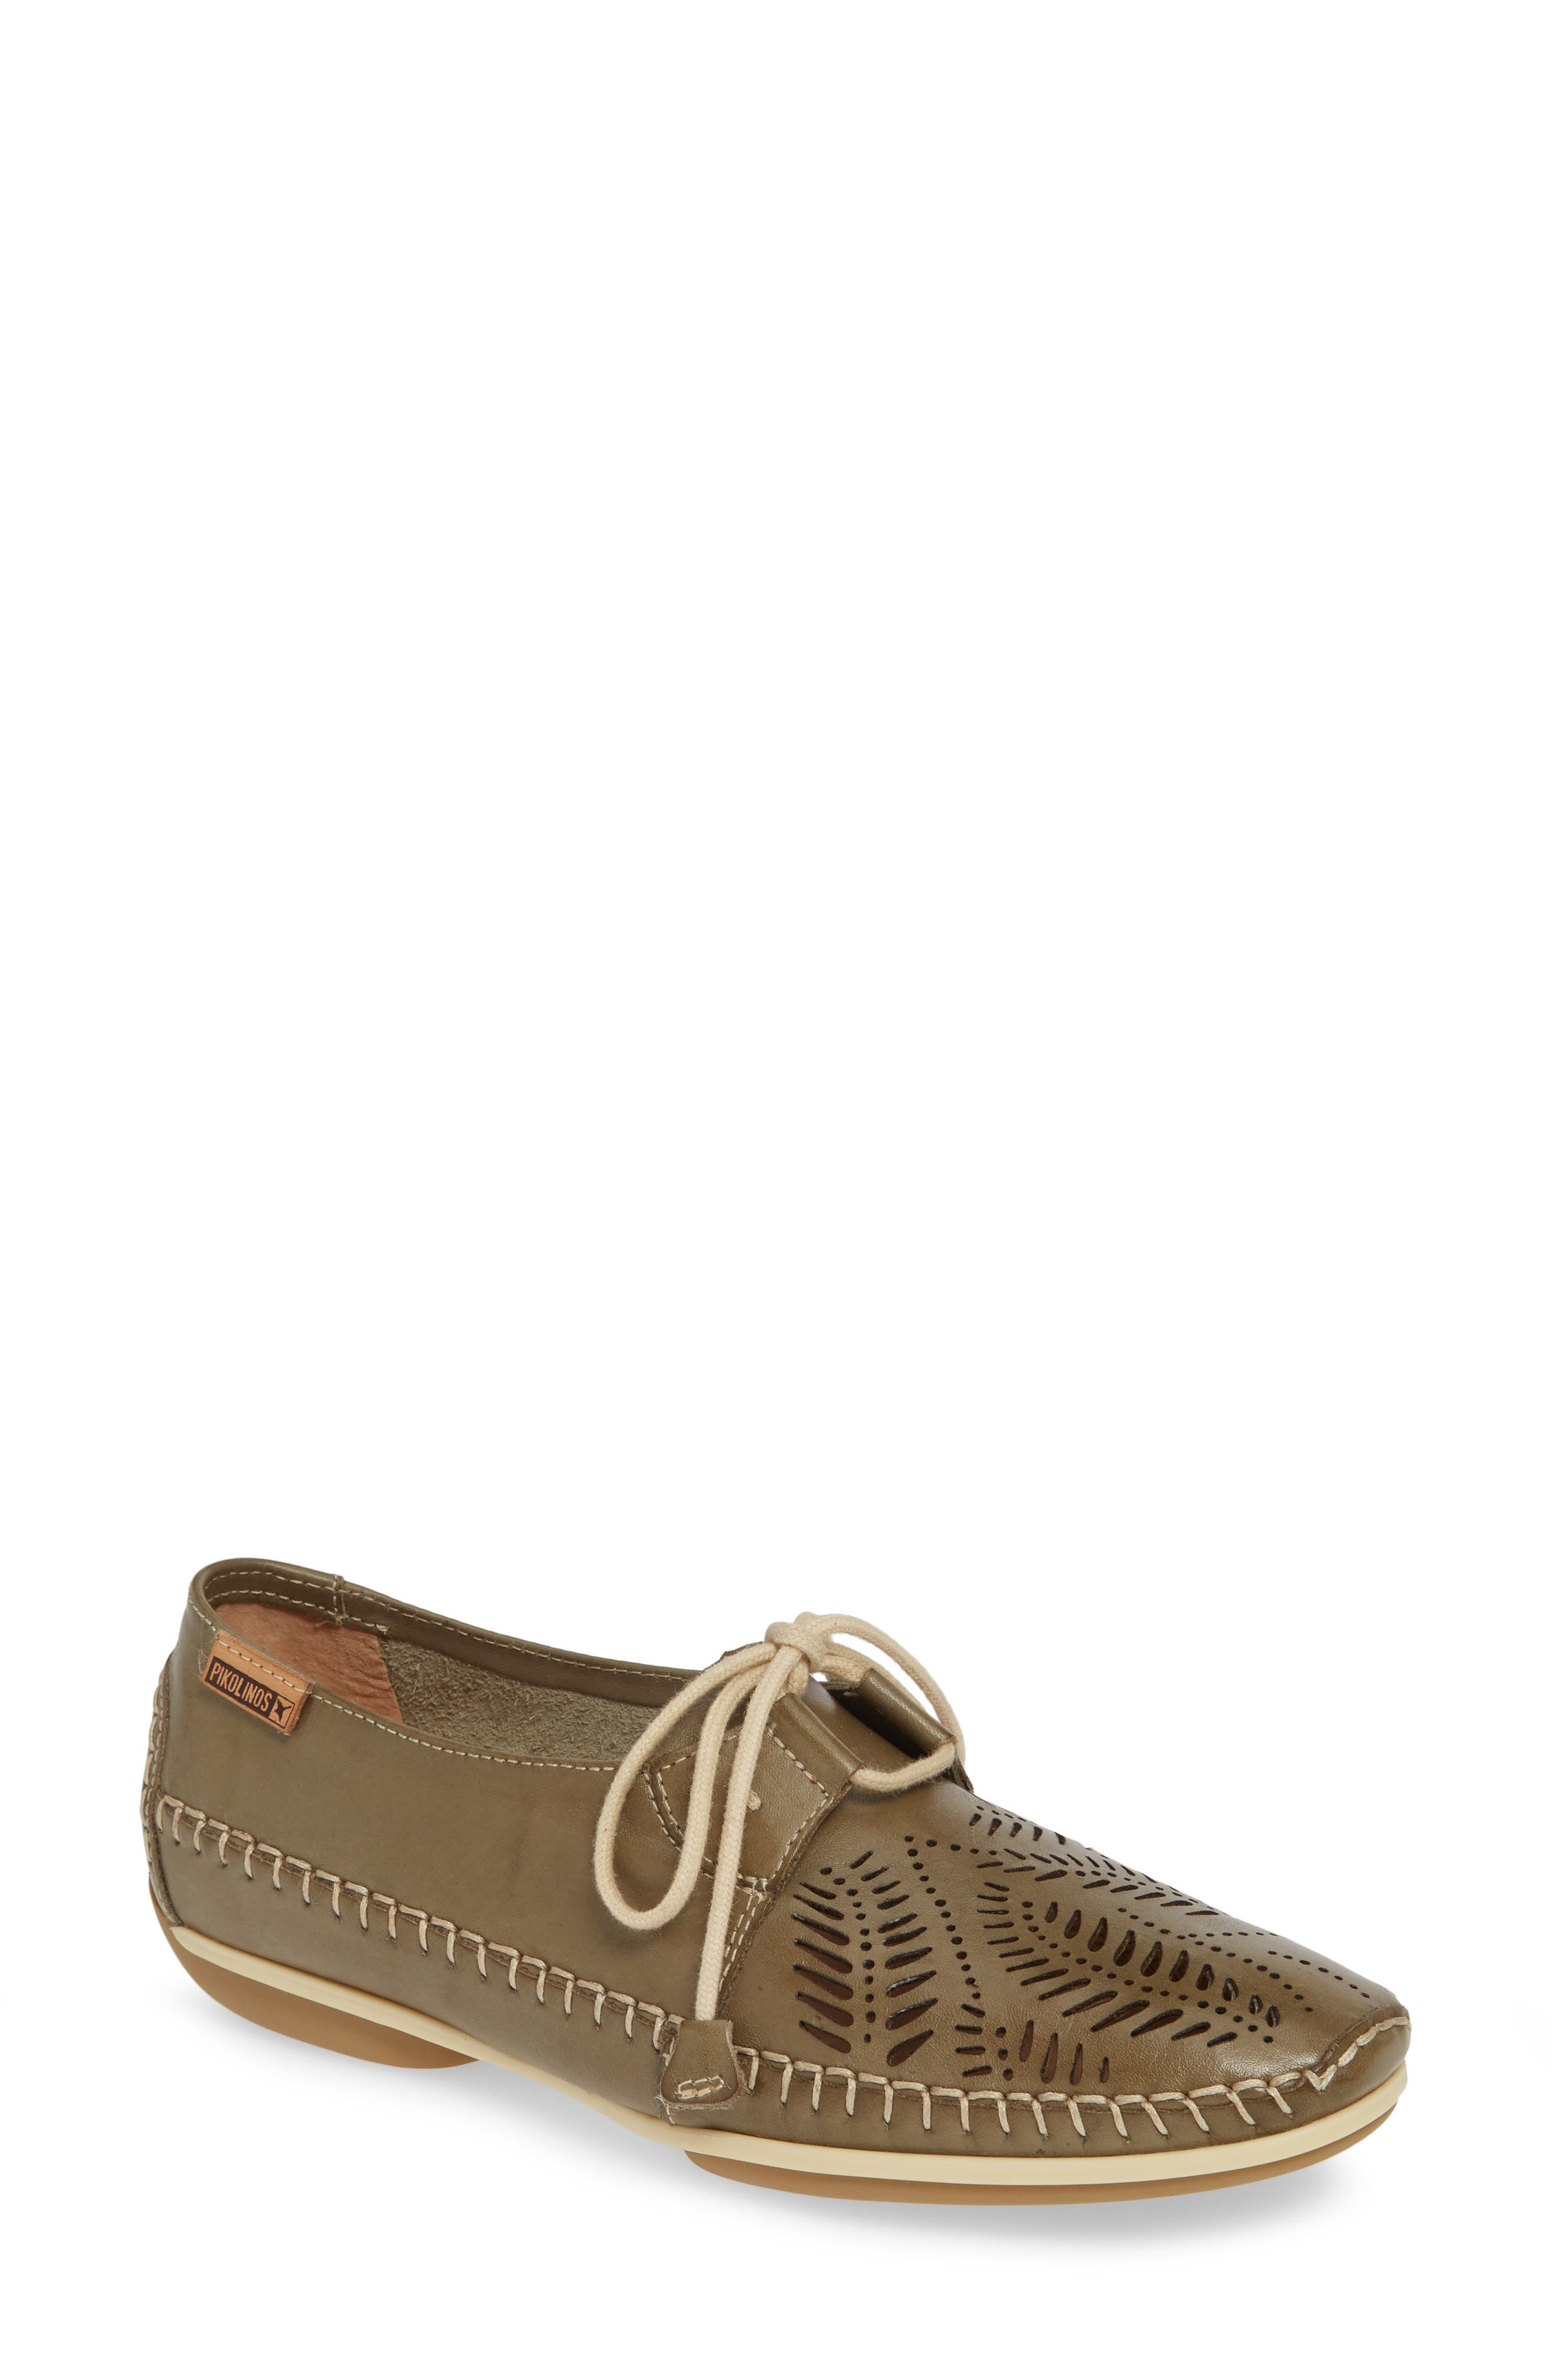 Pikolinos Roma Perforated Lace-Up, Grey